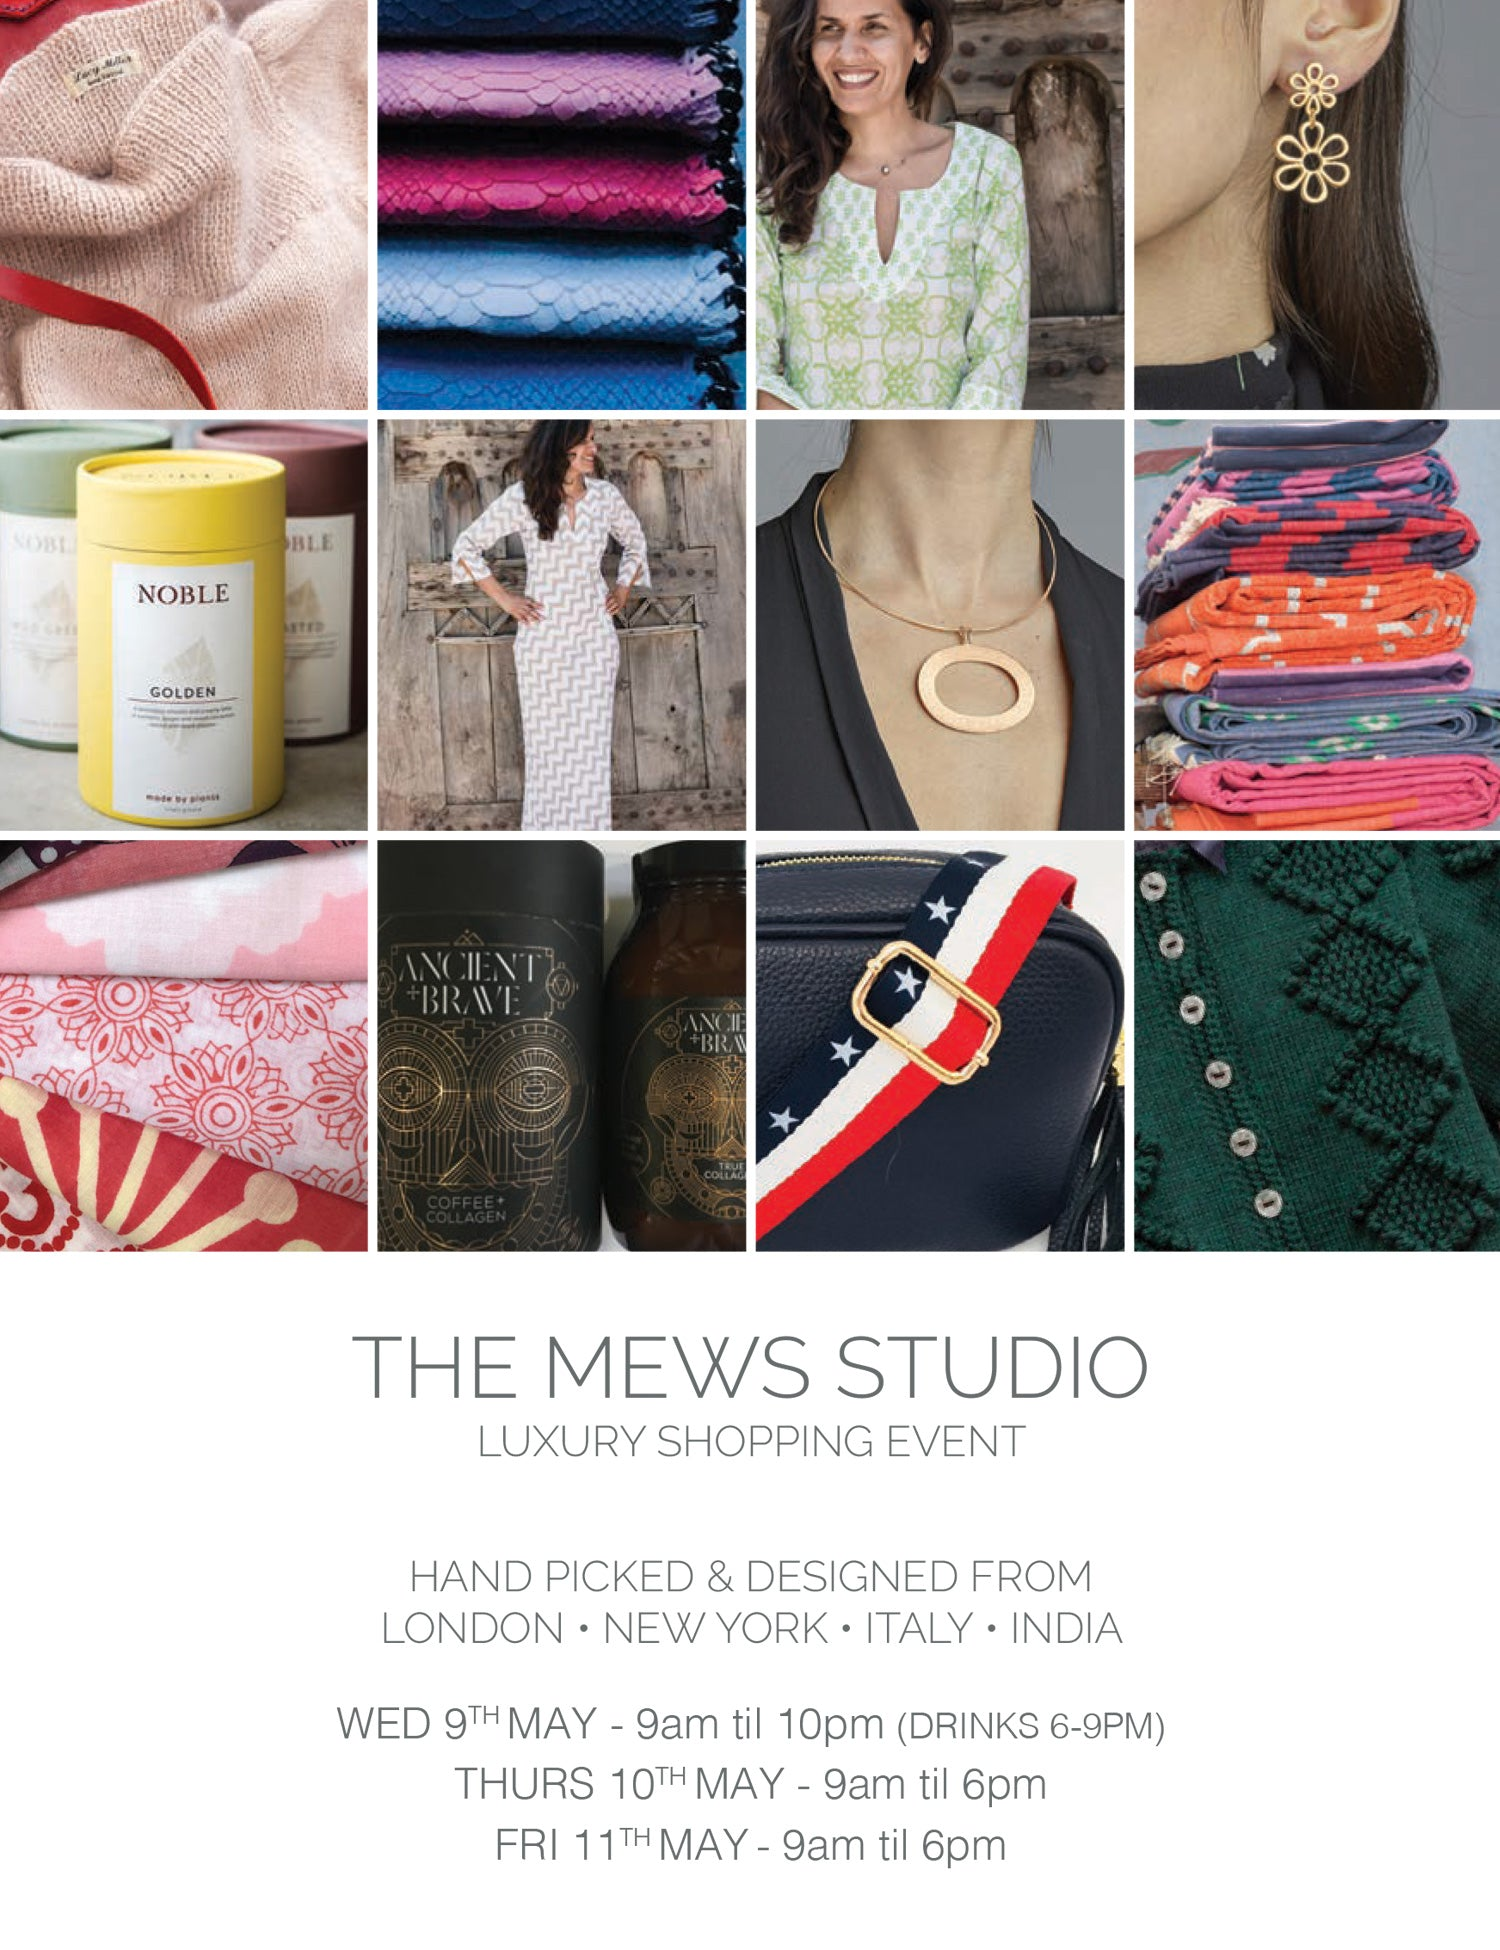 Invitation to Mews Studio luxury shopping event